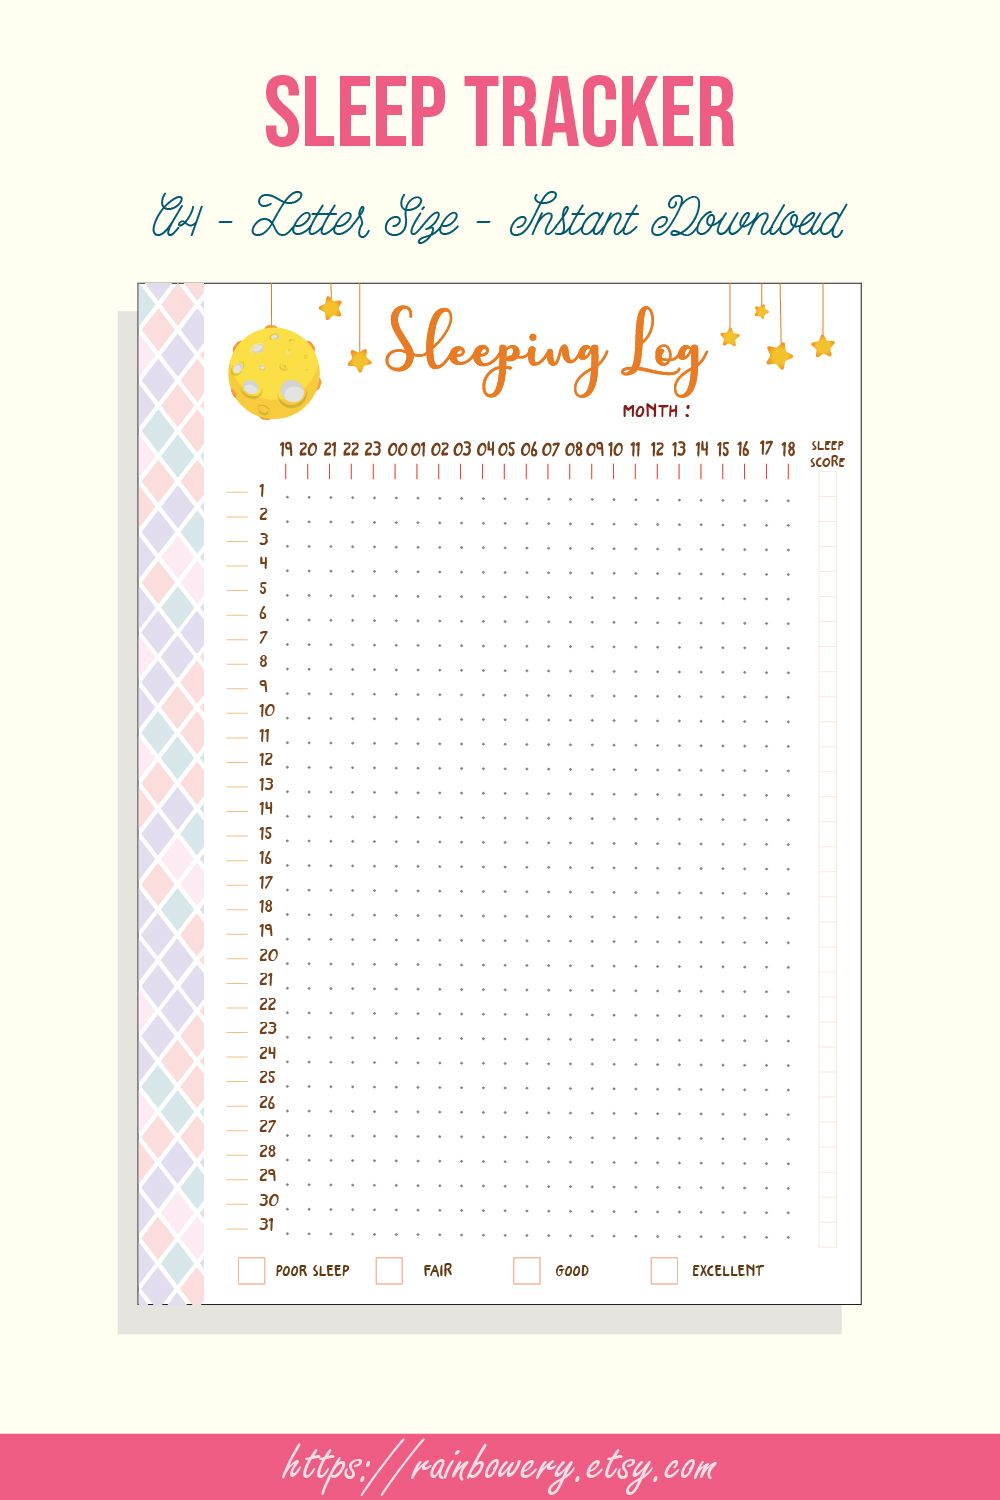 photograph relating to Sleep Tracker Printable known as Rest Tracker Printable, Rest Log, Rest Routine, Snooze